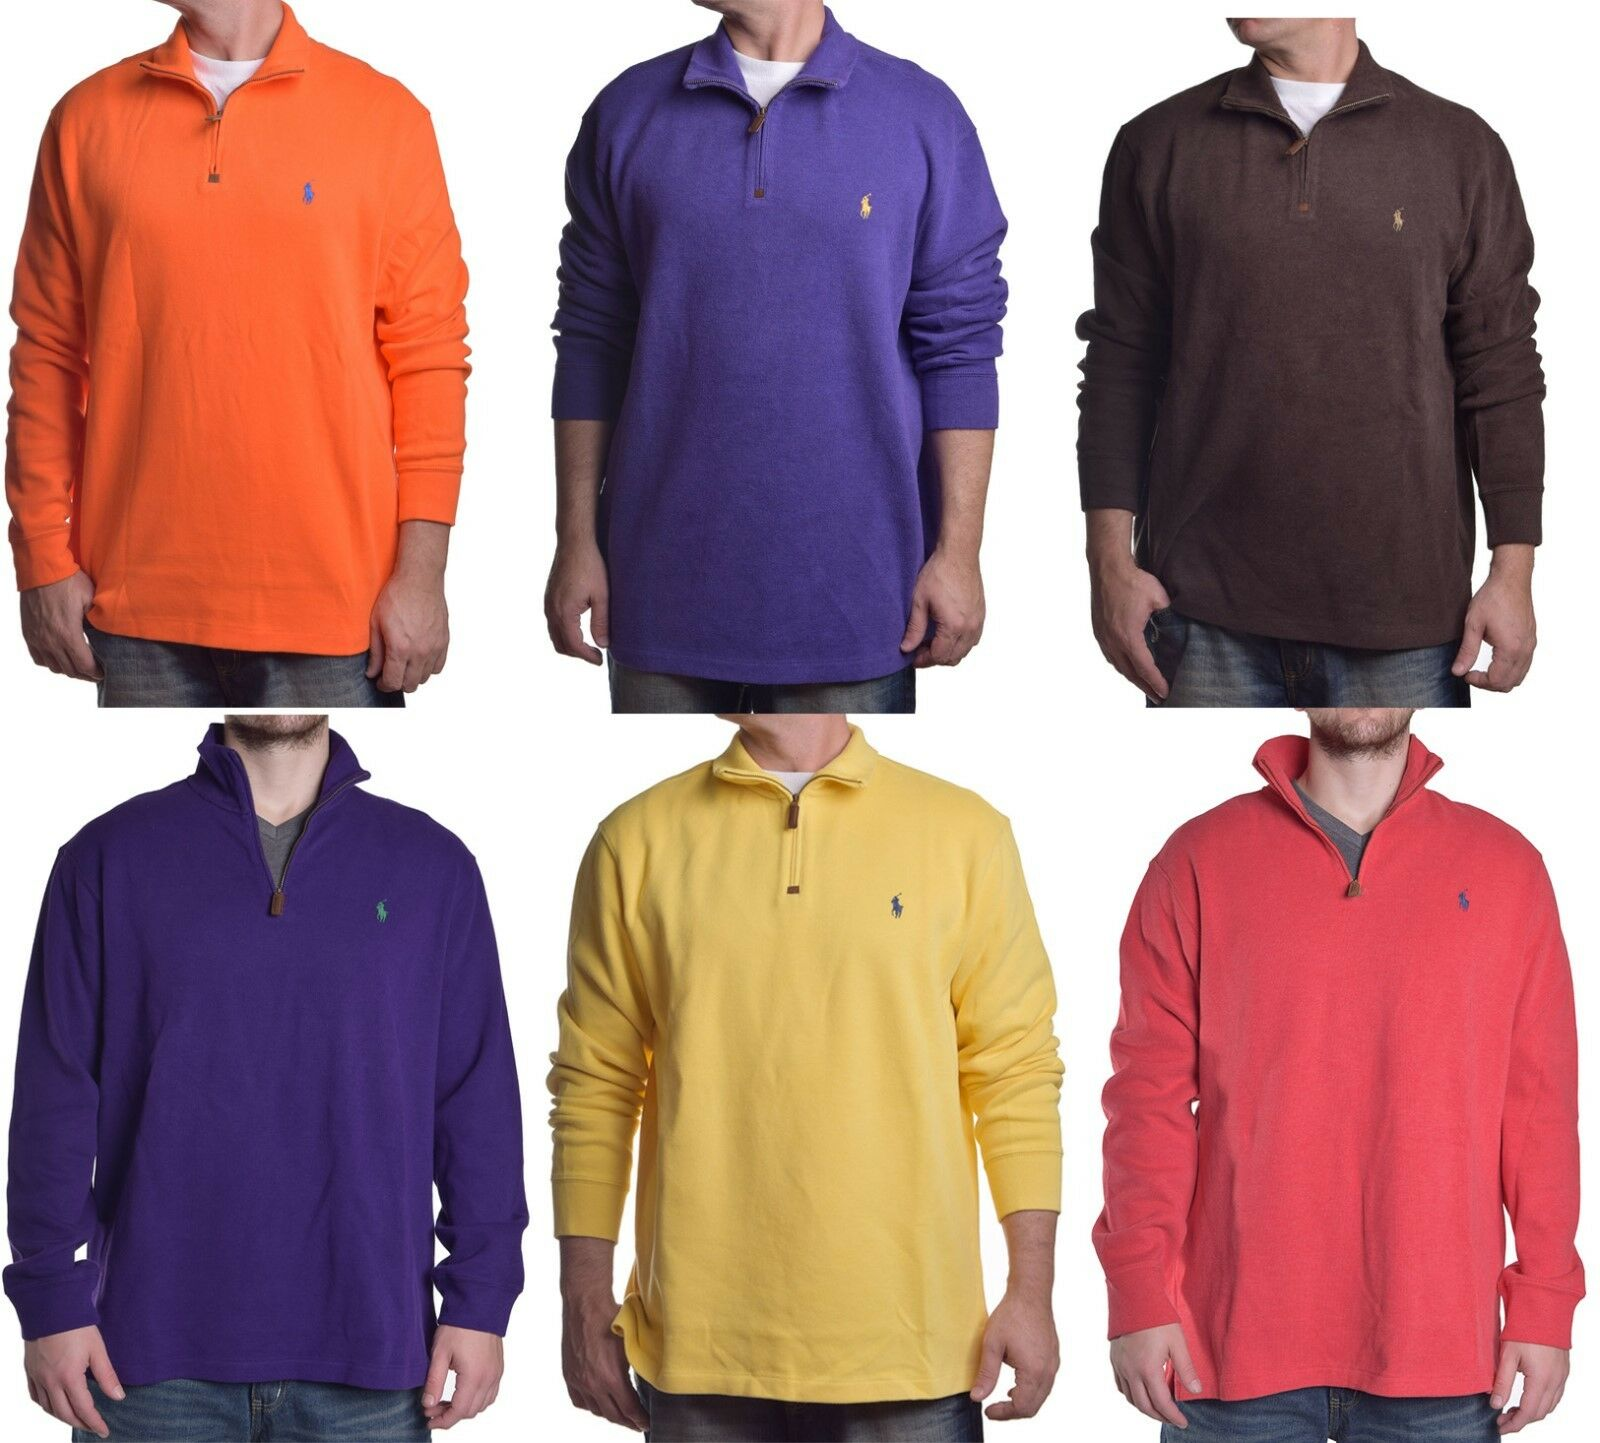 Ralph Lauren Men's  1 4 Zip Casual Pull Over Sweater Choose color and Size